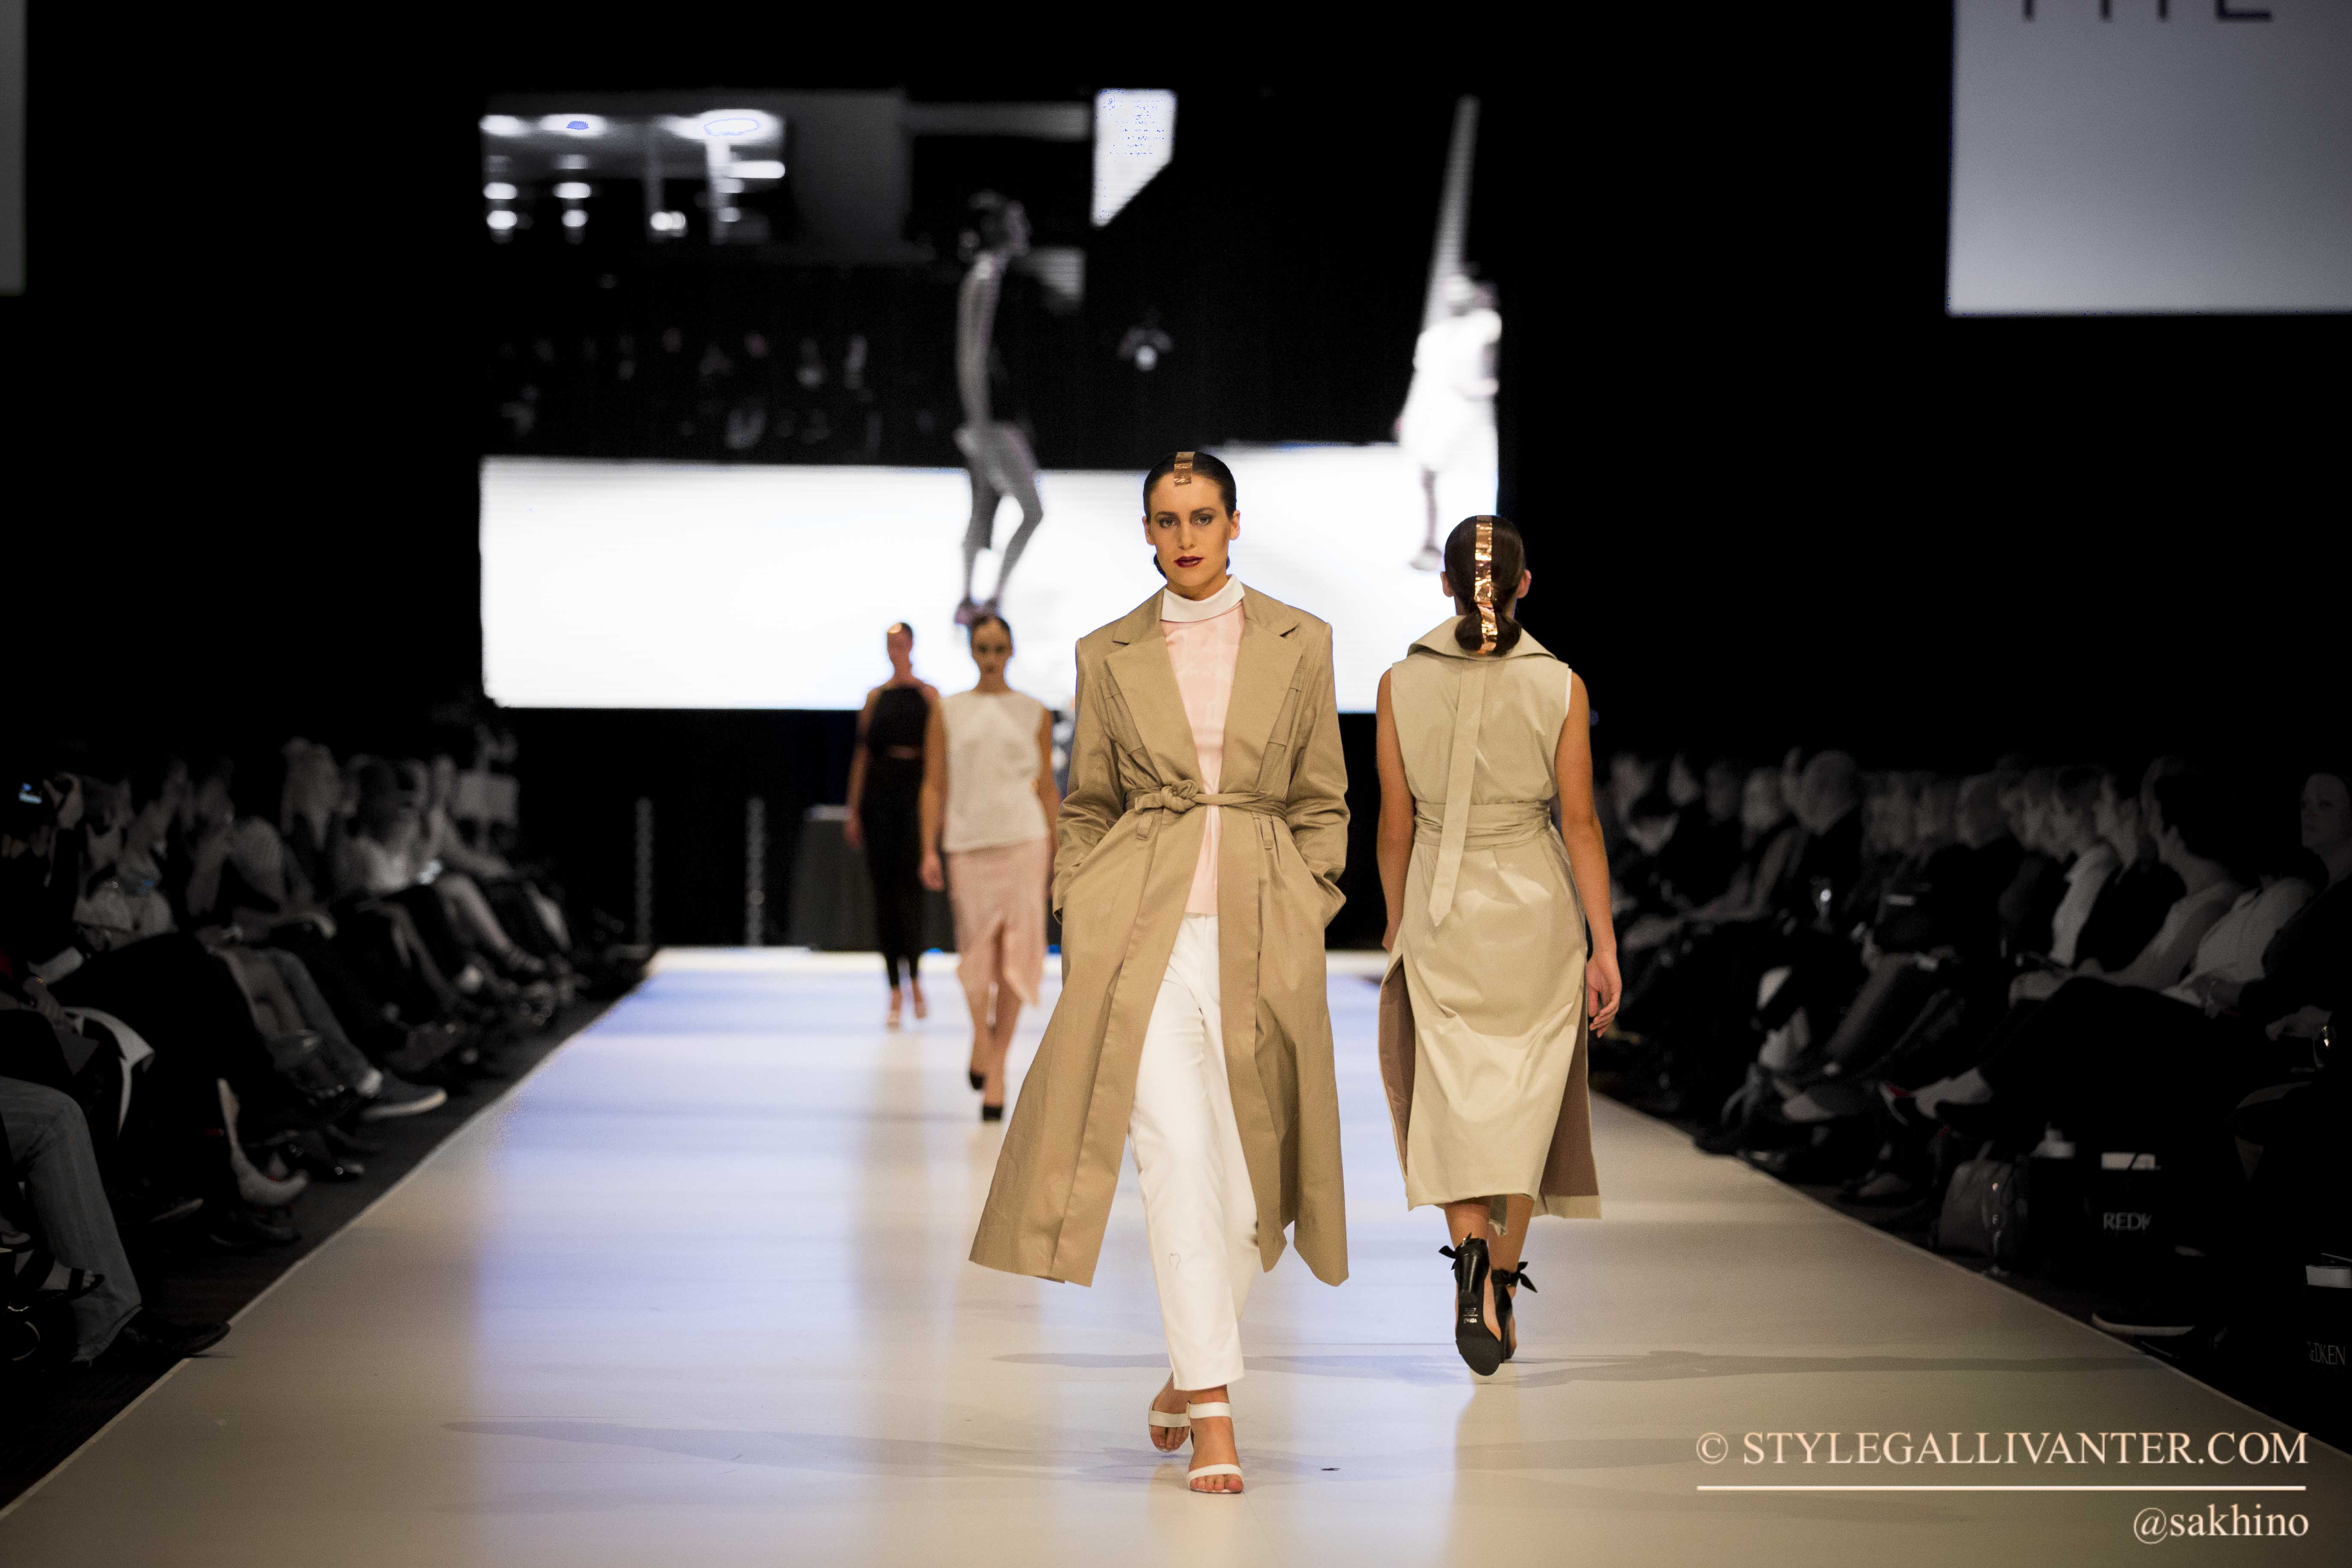 fashfest-2015-the-label_fashfest2015-mimetic_canberra-fashion-week-2015_mirandasakhino-fashfest-miranda-sakhino-resort-collection_miranda-sakhino-fashfest-16